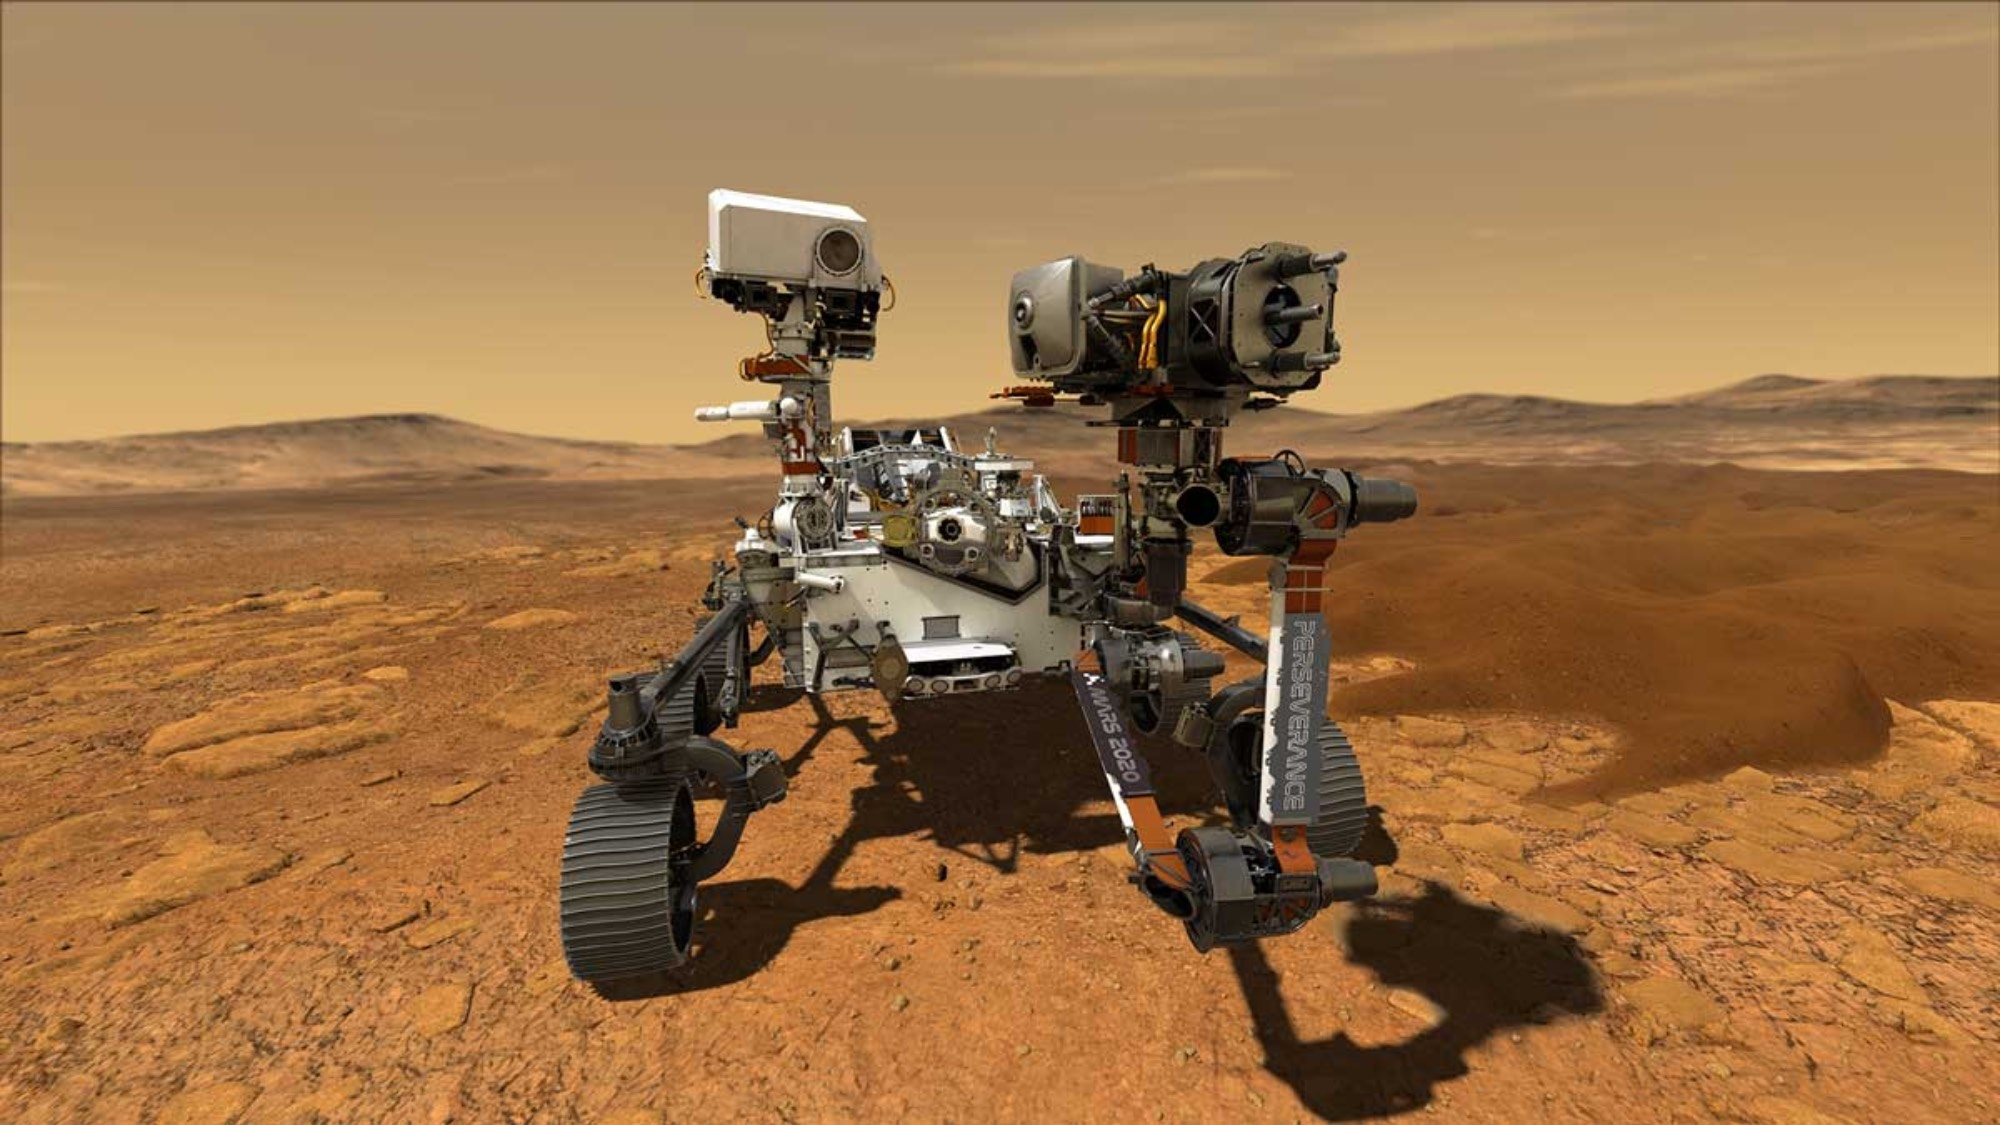 Illustration of the Mars Perseverance Rover